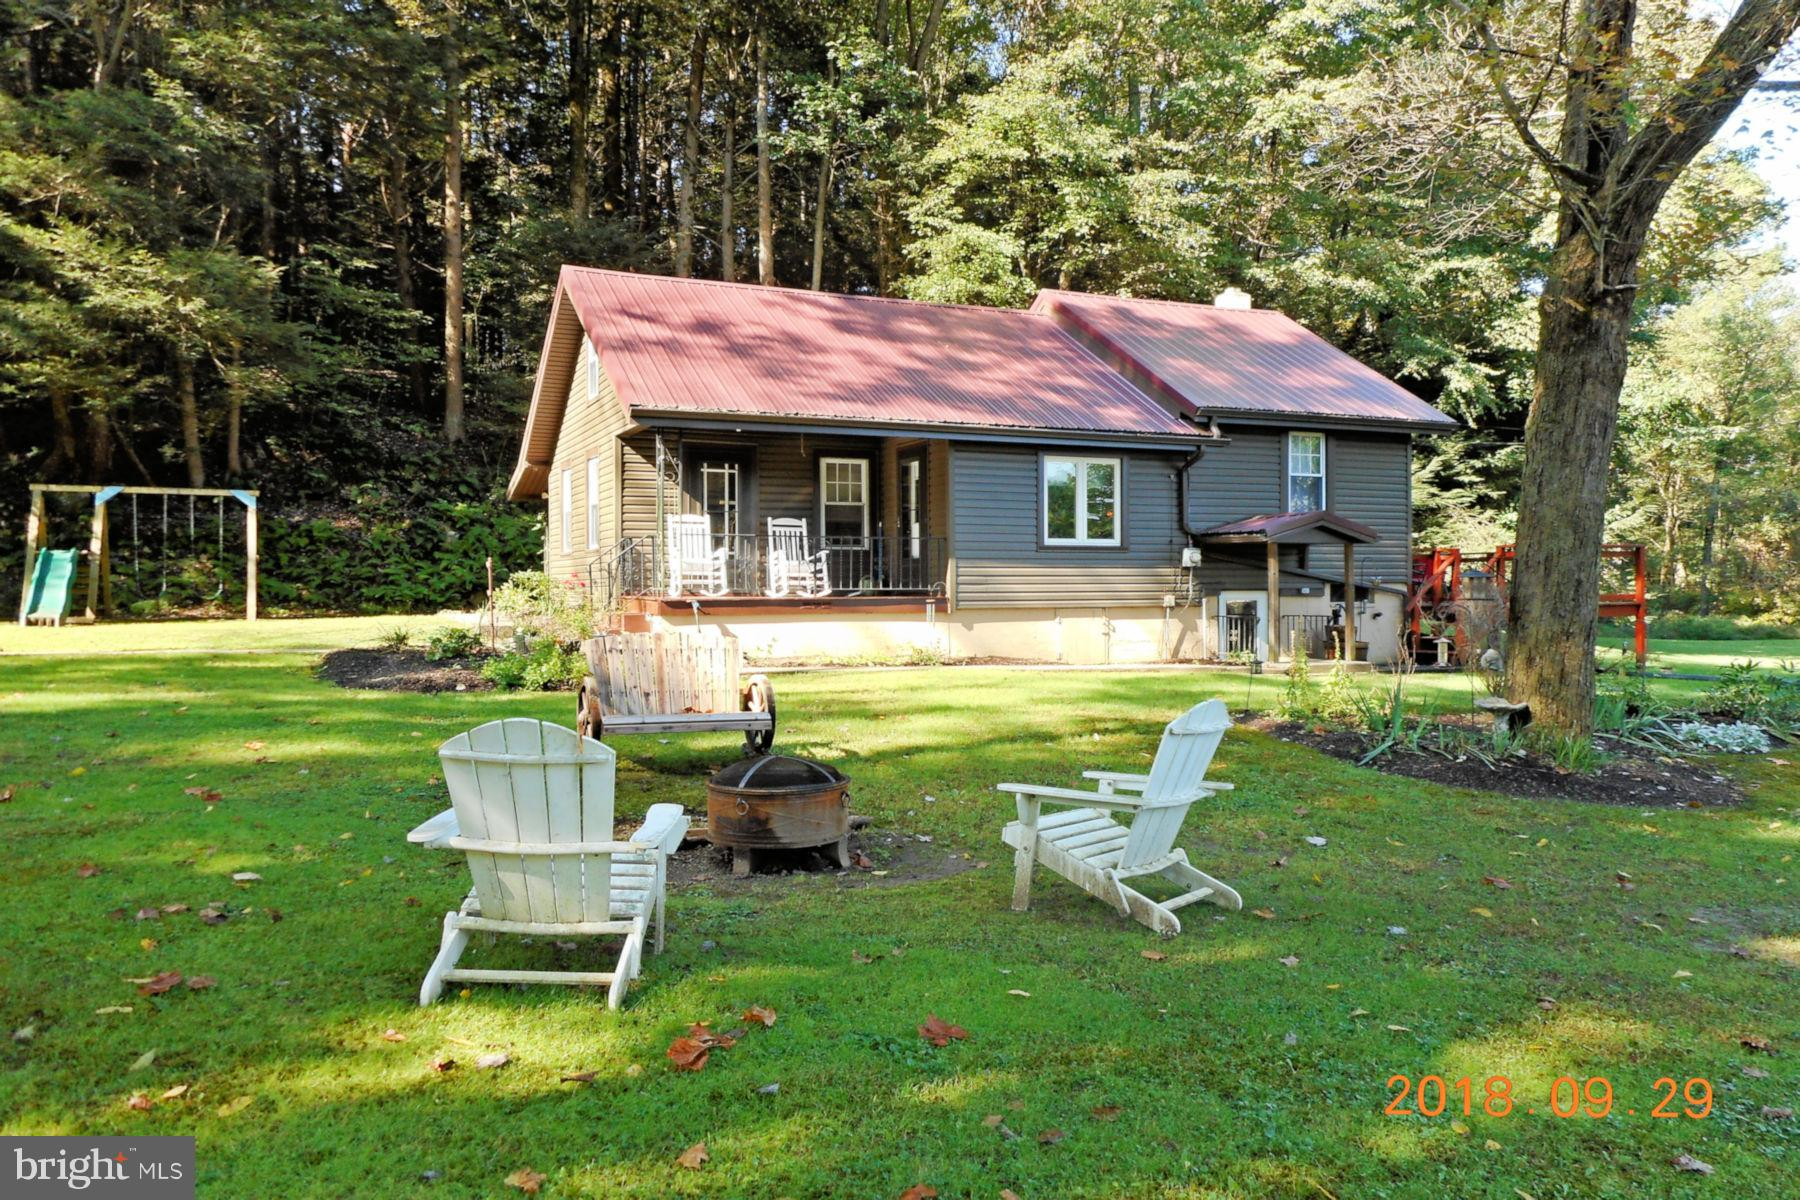 126 GEARY WOLFE ROAD, PINE GROVE, PA 17963